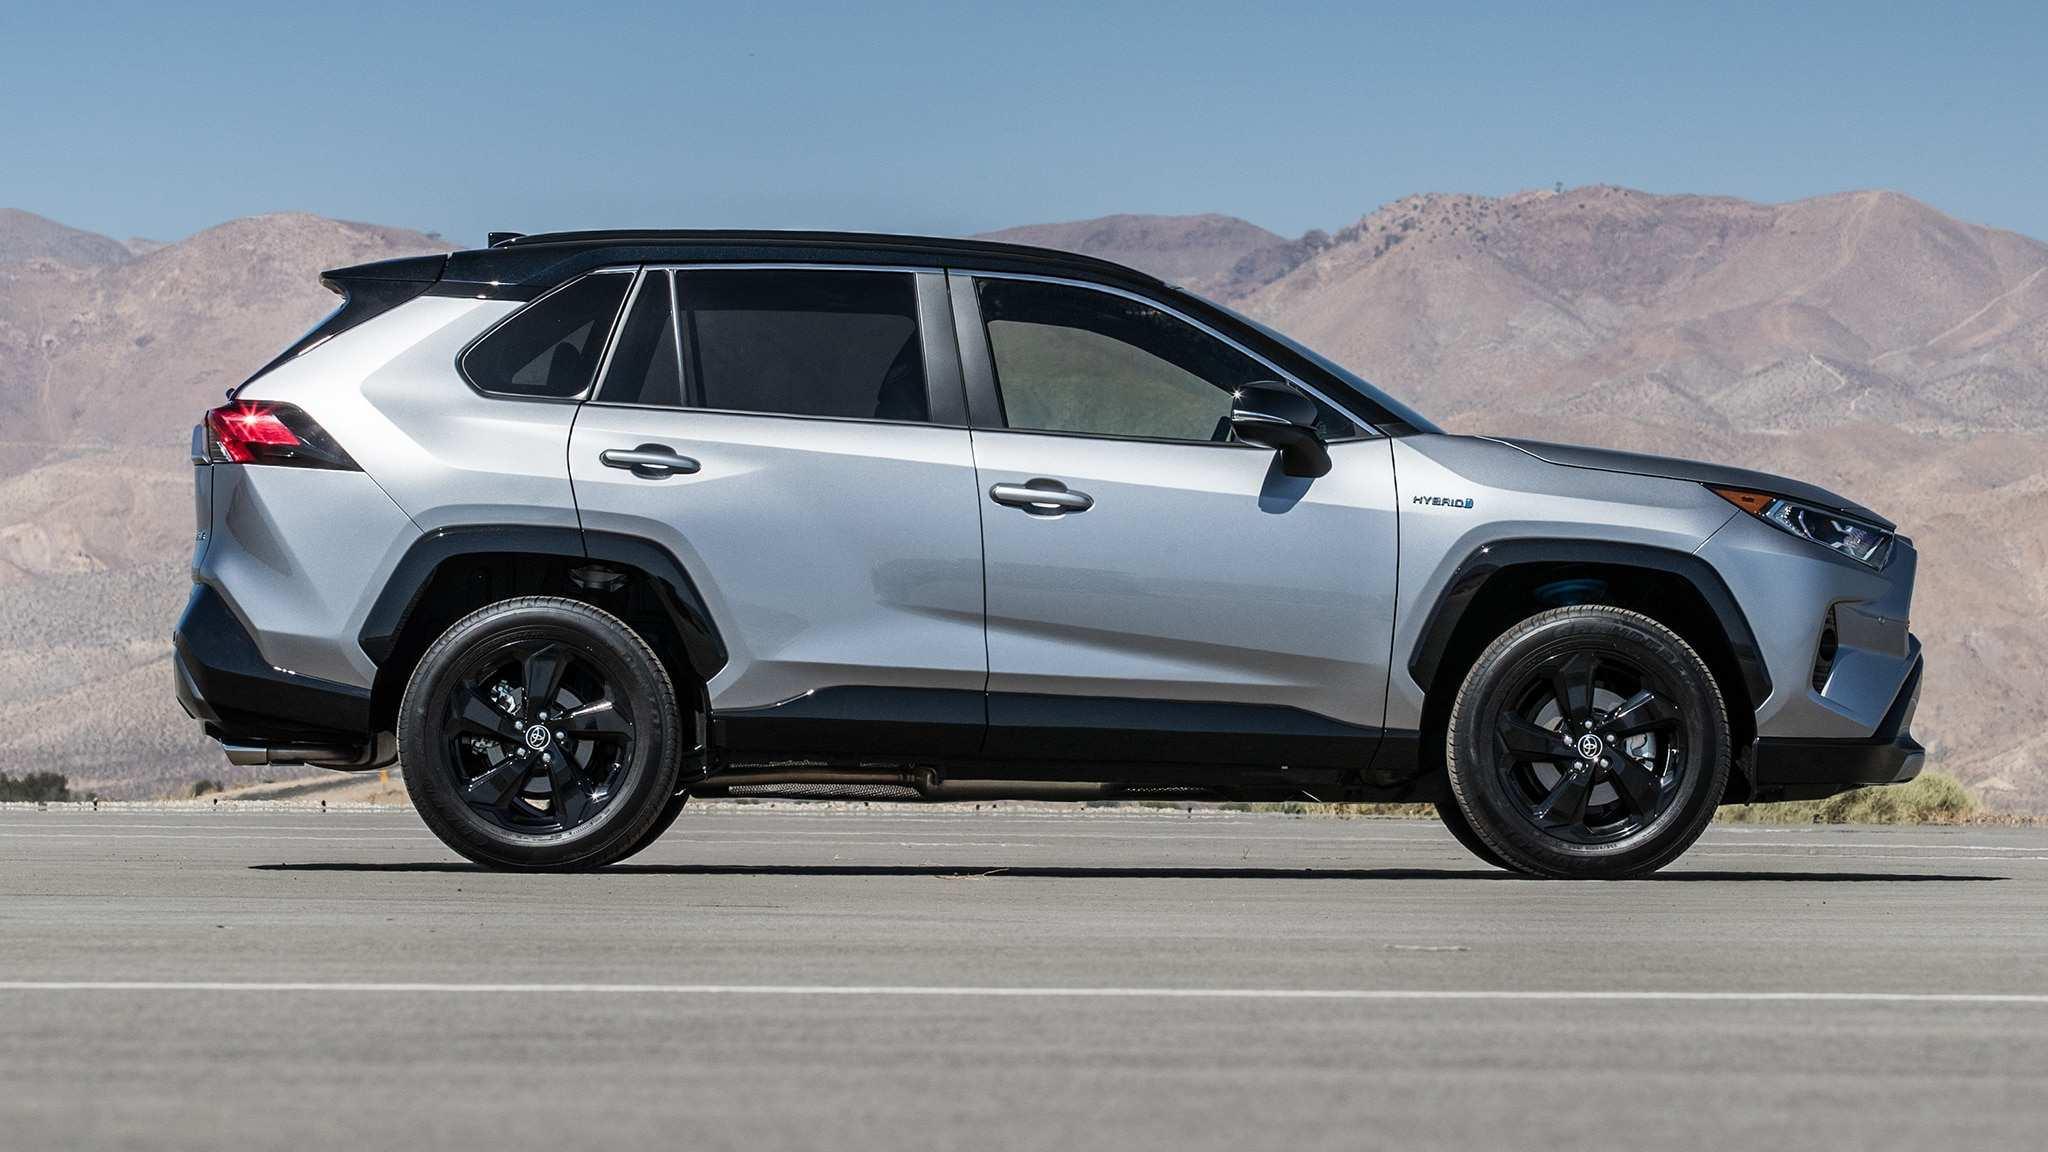 36 The Best 2019 Toyota Rav4 Hybrid Picture